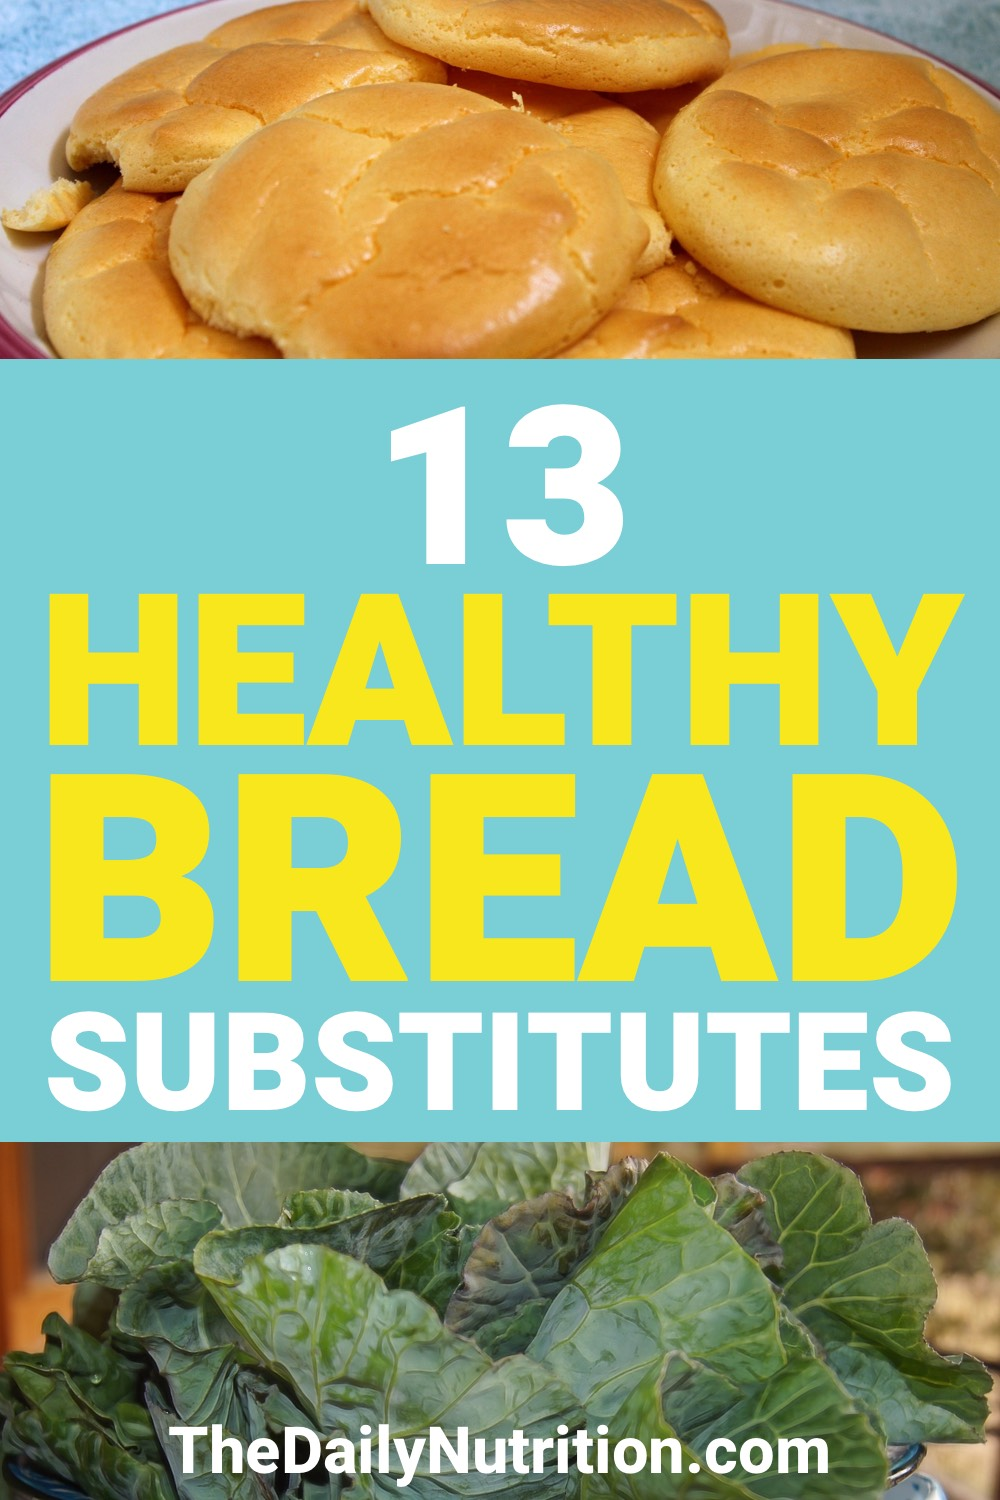 Here are 13 bread substitutes that you're going to love. Healthier versions of the bread you have everyday.